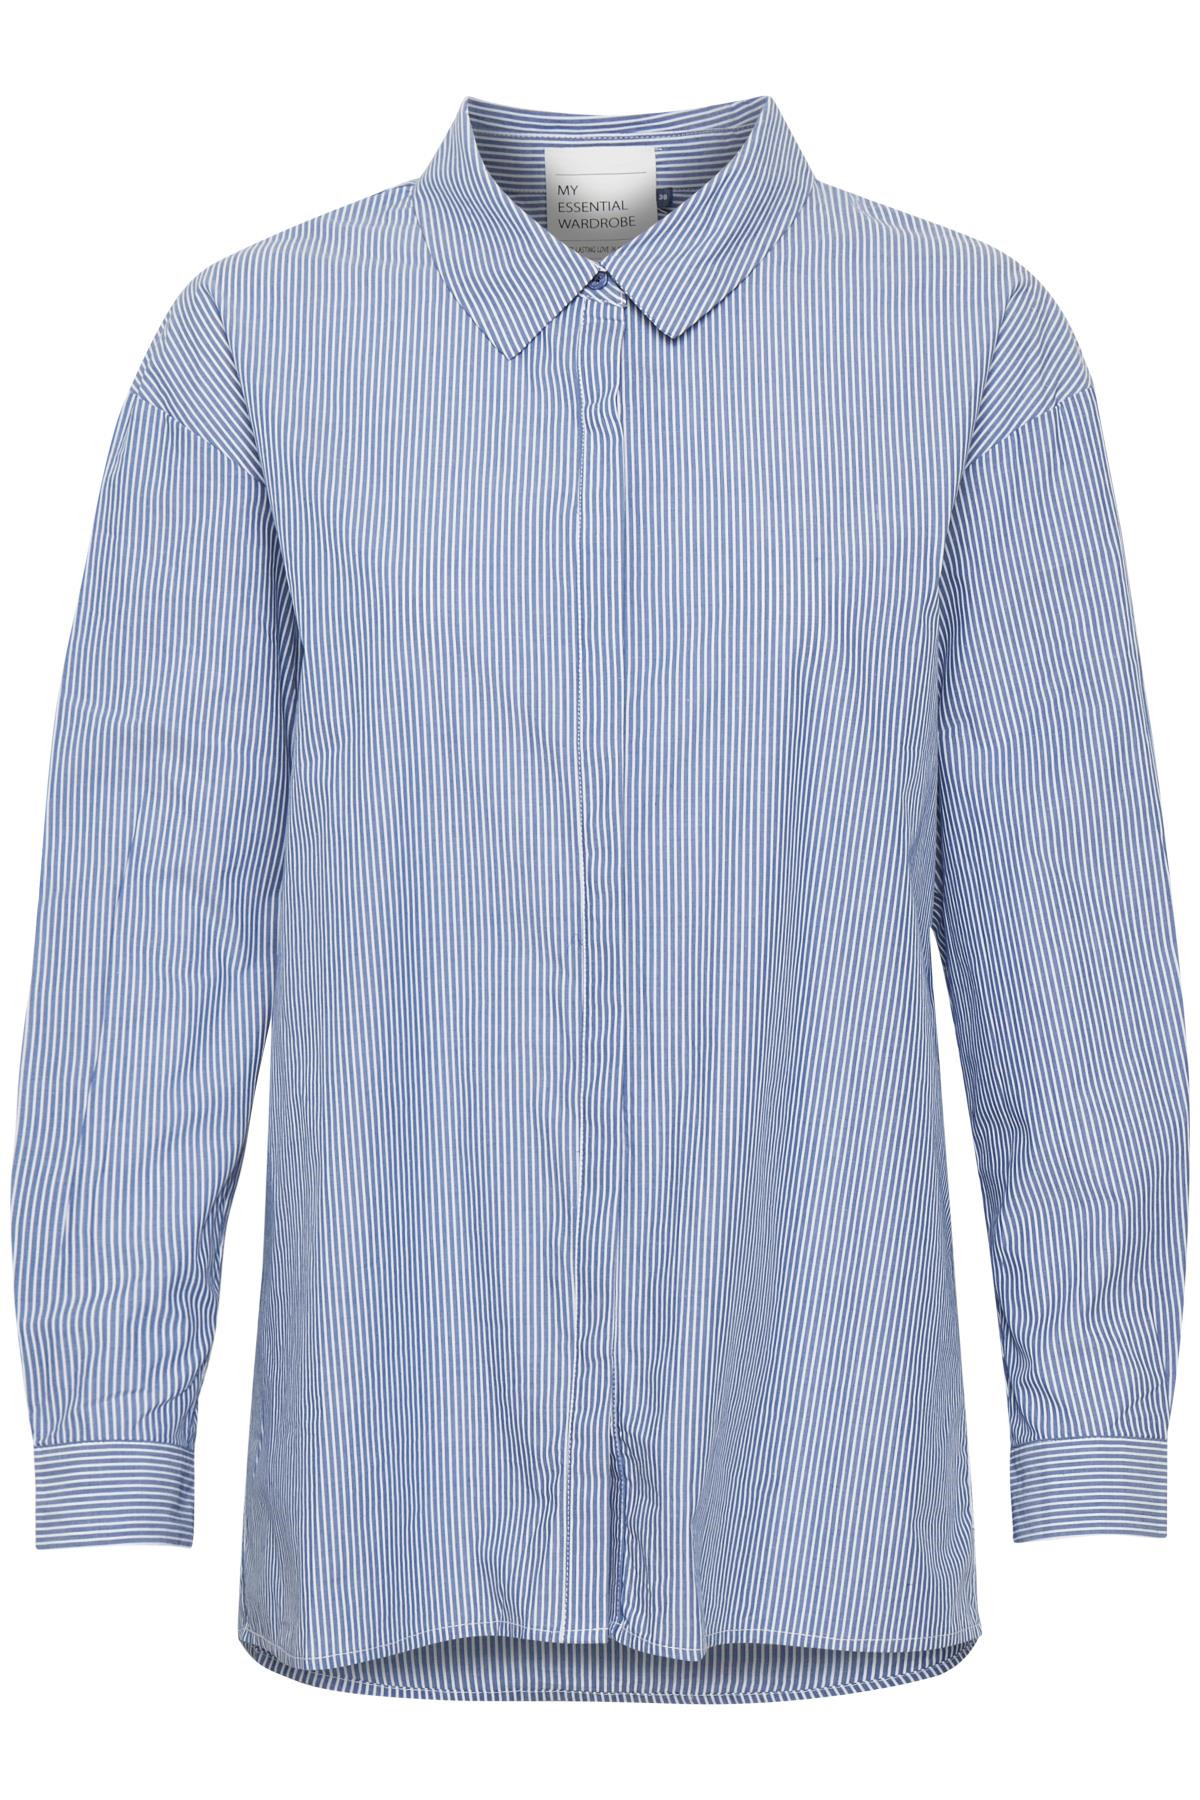 Image of   Denim Hunter 03 THE SHIRT 10702539 S (Striped Medium Blue 38076, 38)